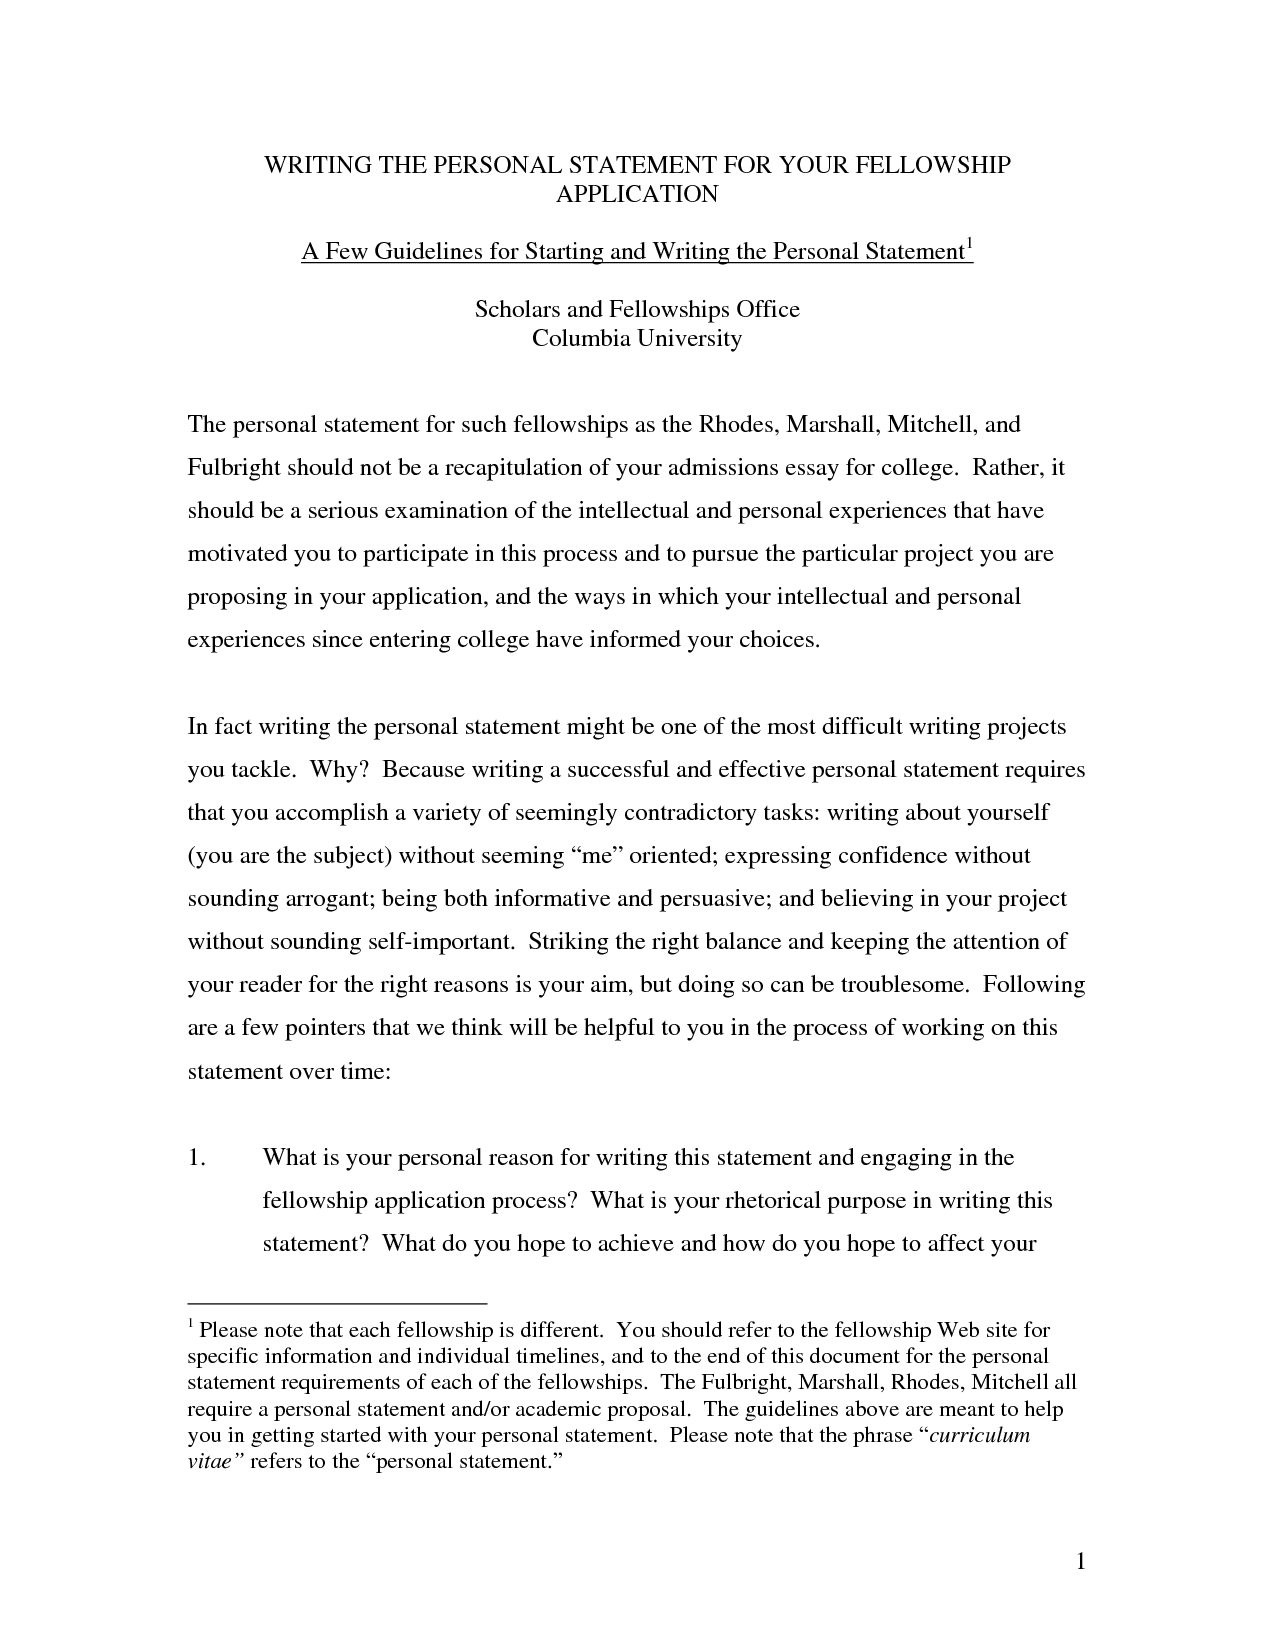 Personal Statement For Admission In University Essay Example Uca English Literature